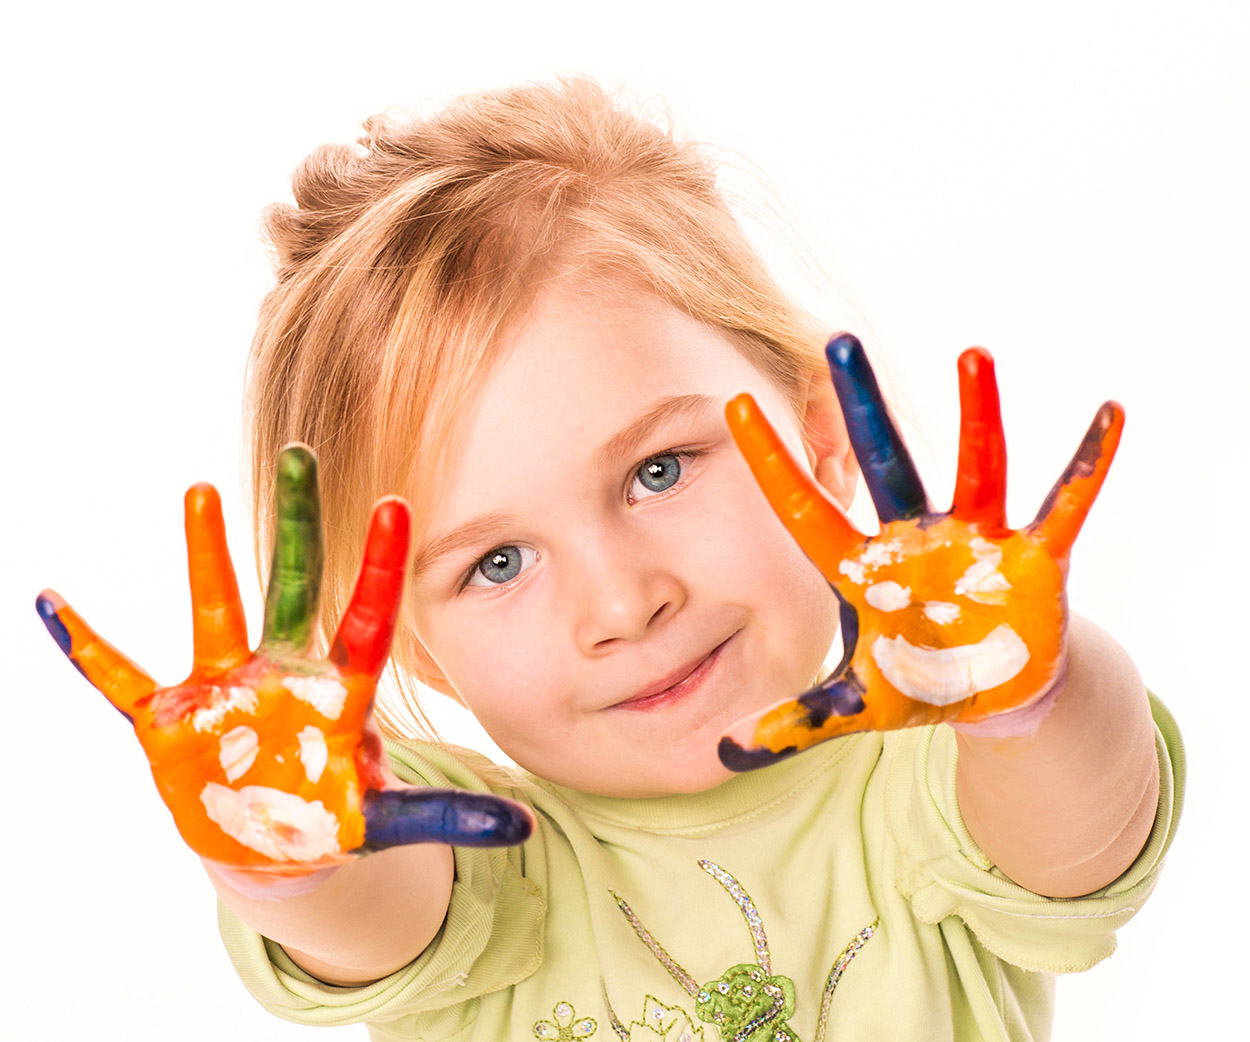 Kid showing 10 fingers